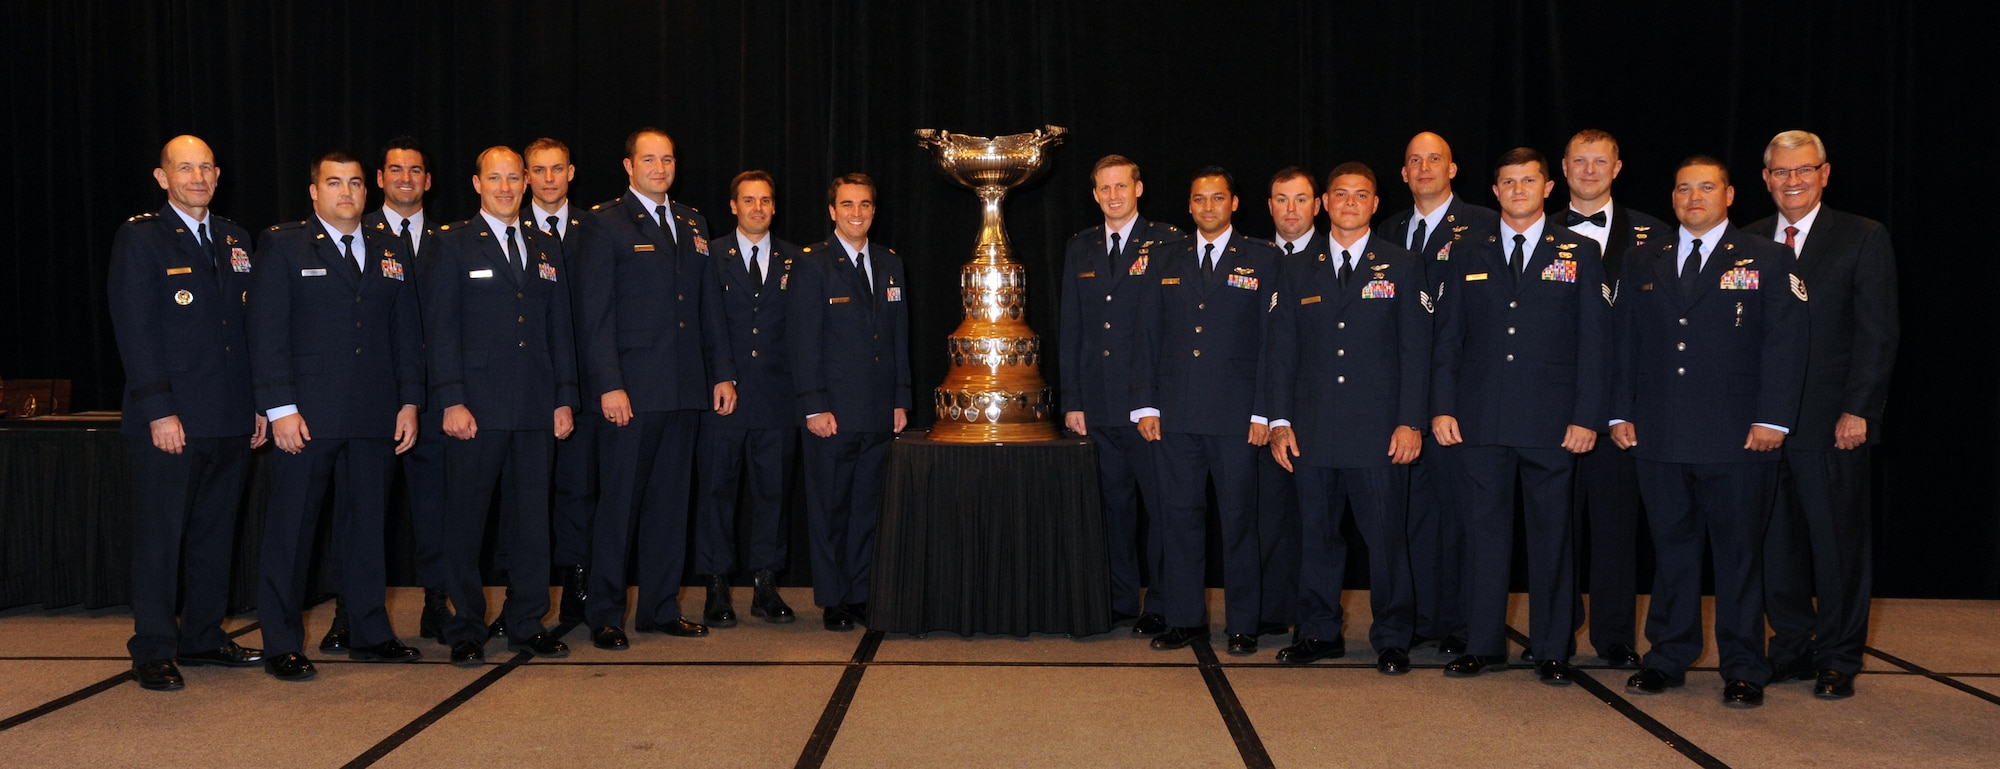 A group photo from the Fall Awards Dinner at the Marriott Crystal Gateway in Arlington, Va. (Courtesy photo)